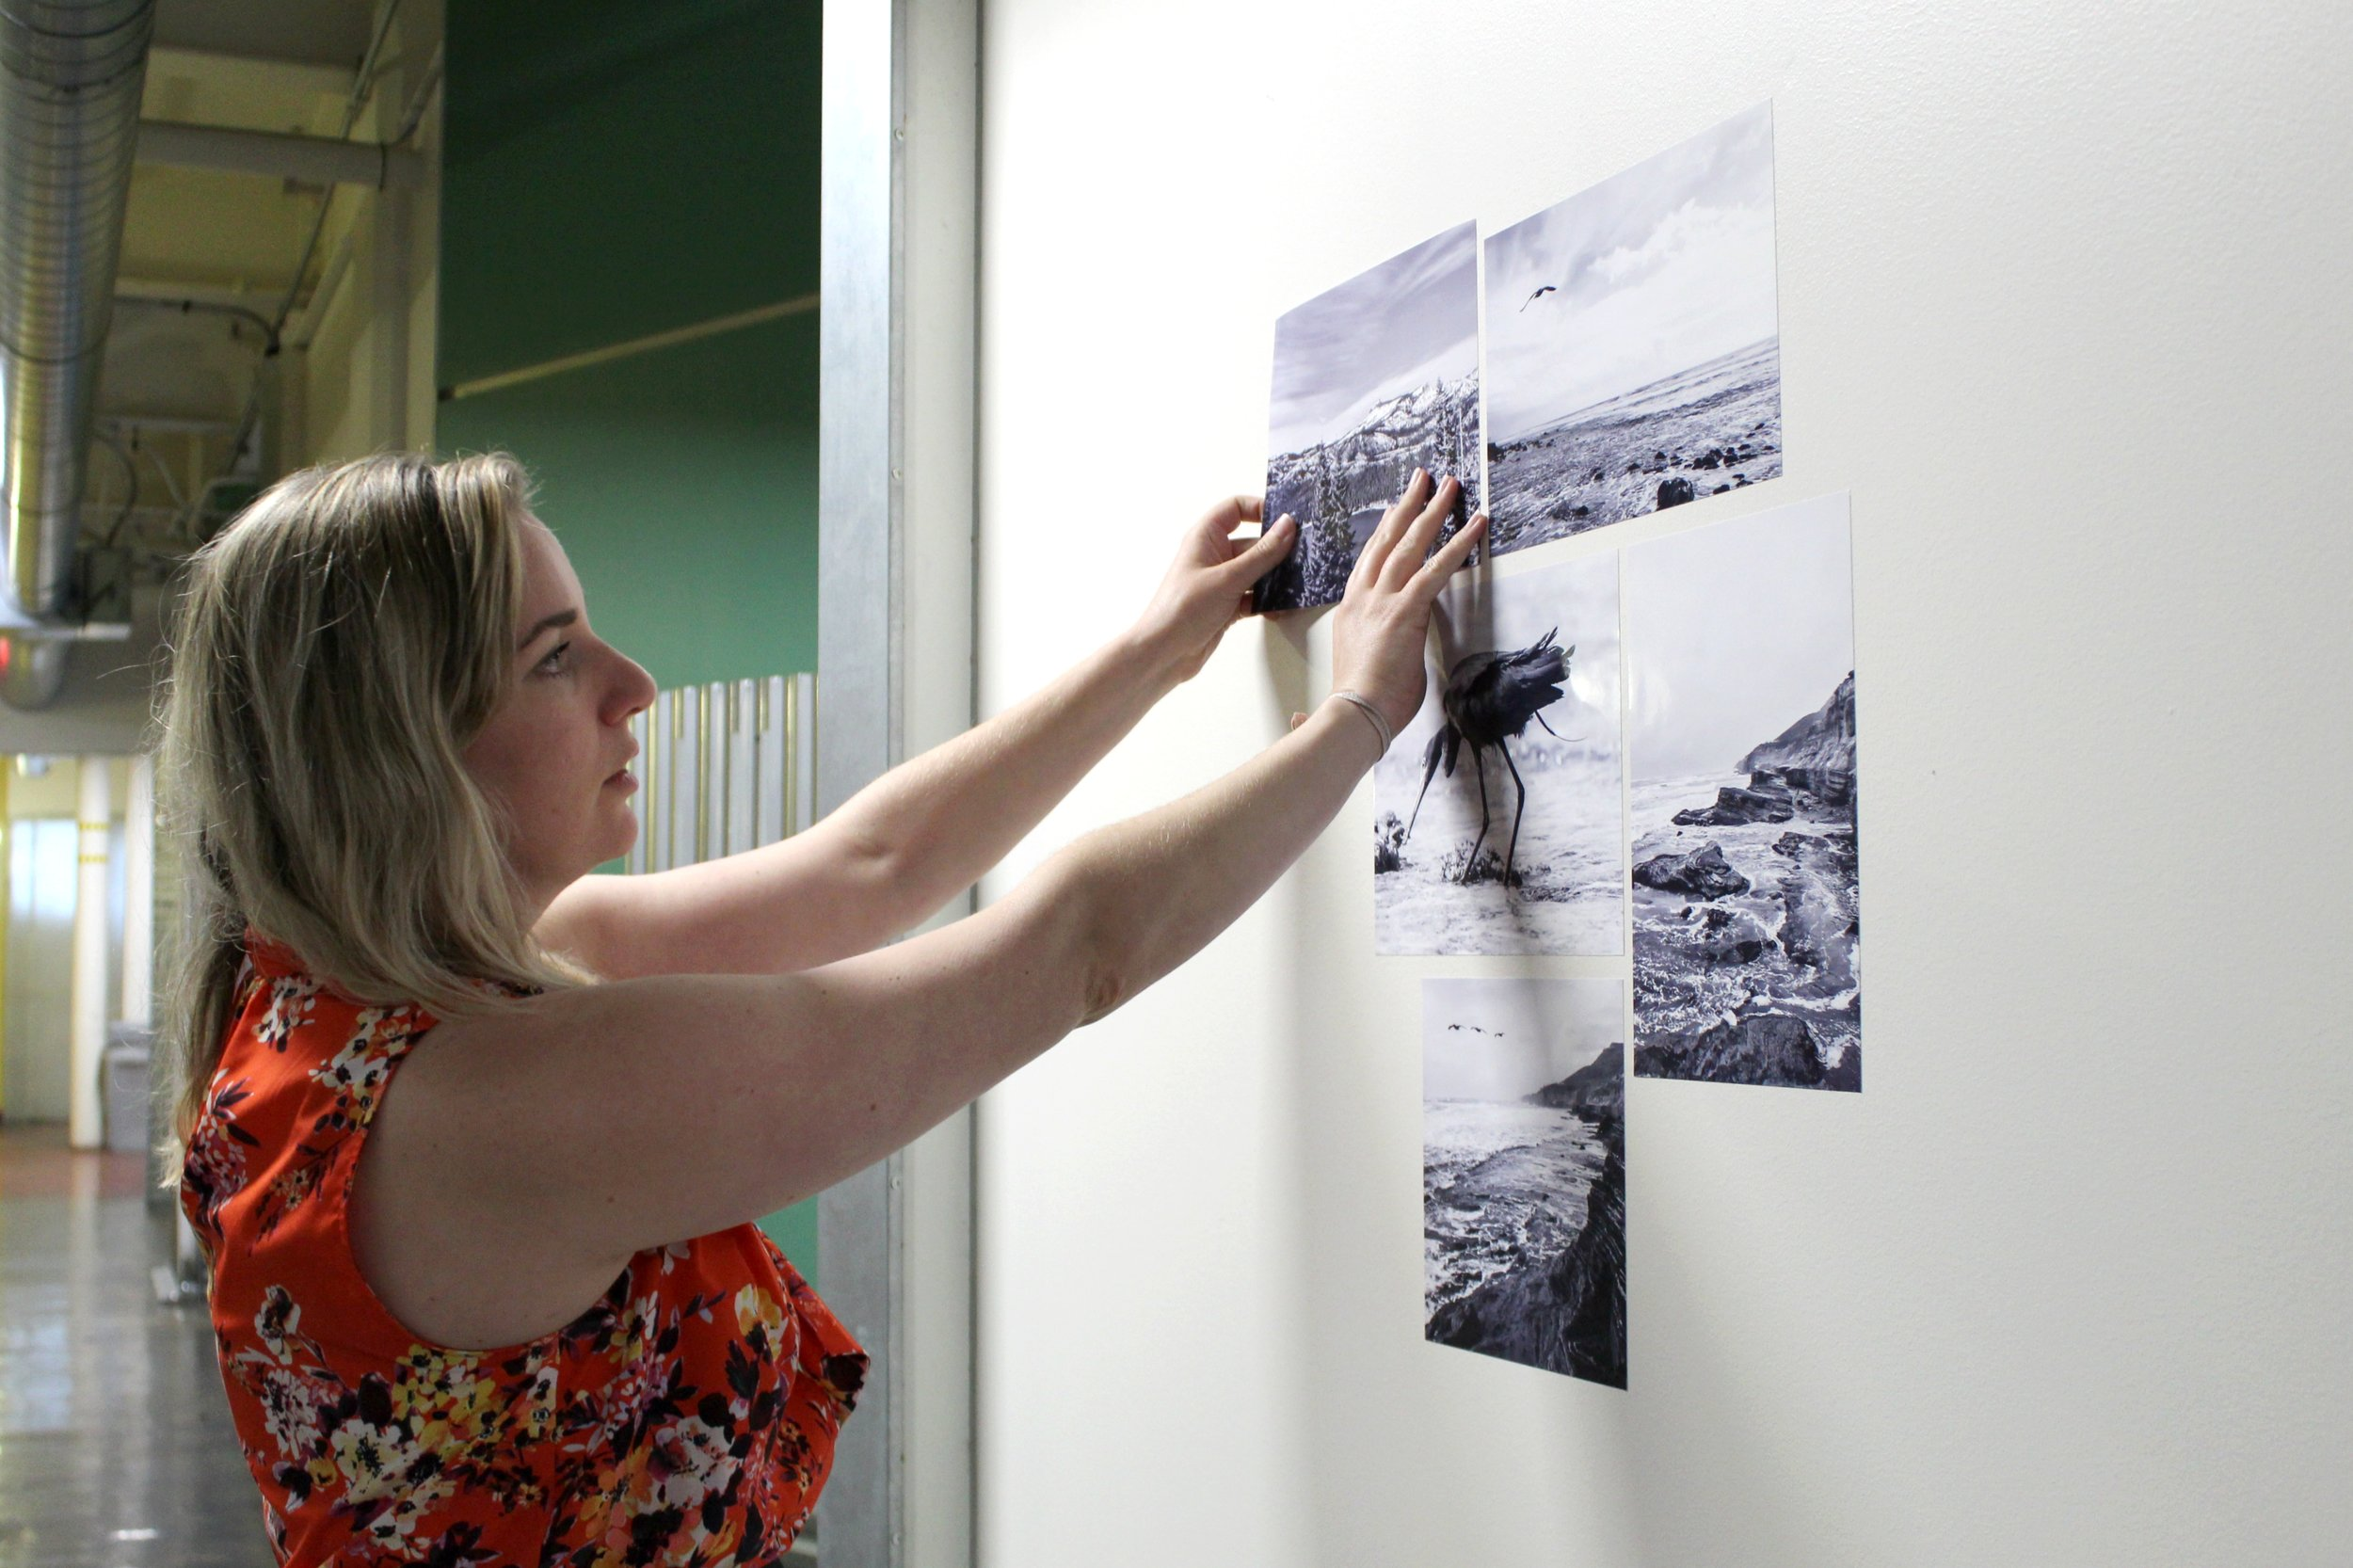 Megan demonstrates to open house visitors how Pinless Pics can be placed and repositioned without damaging the walls.